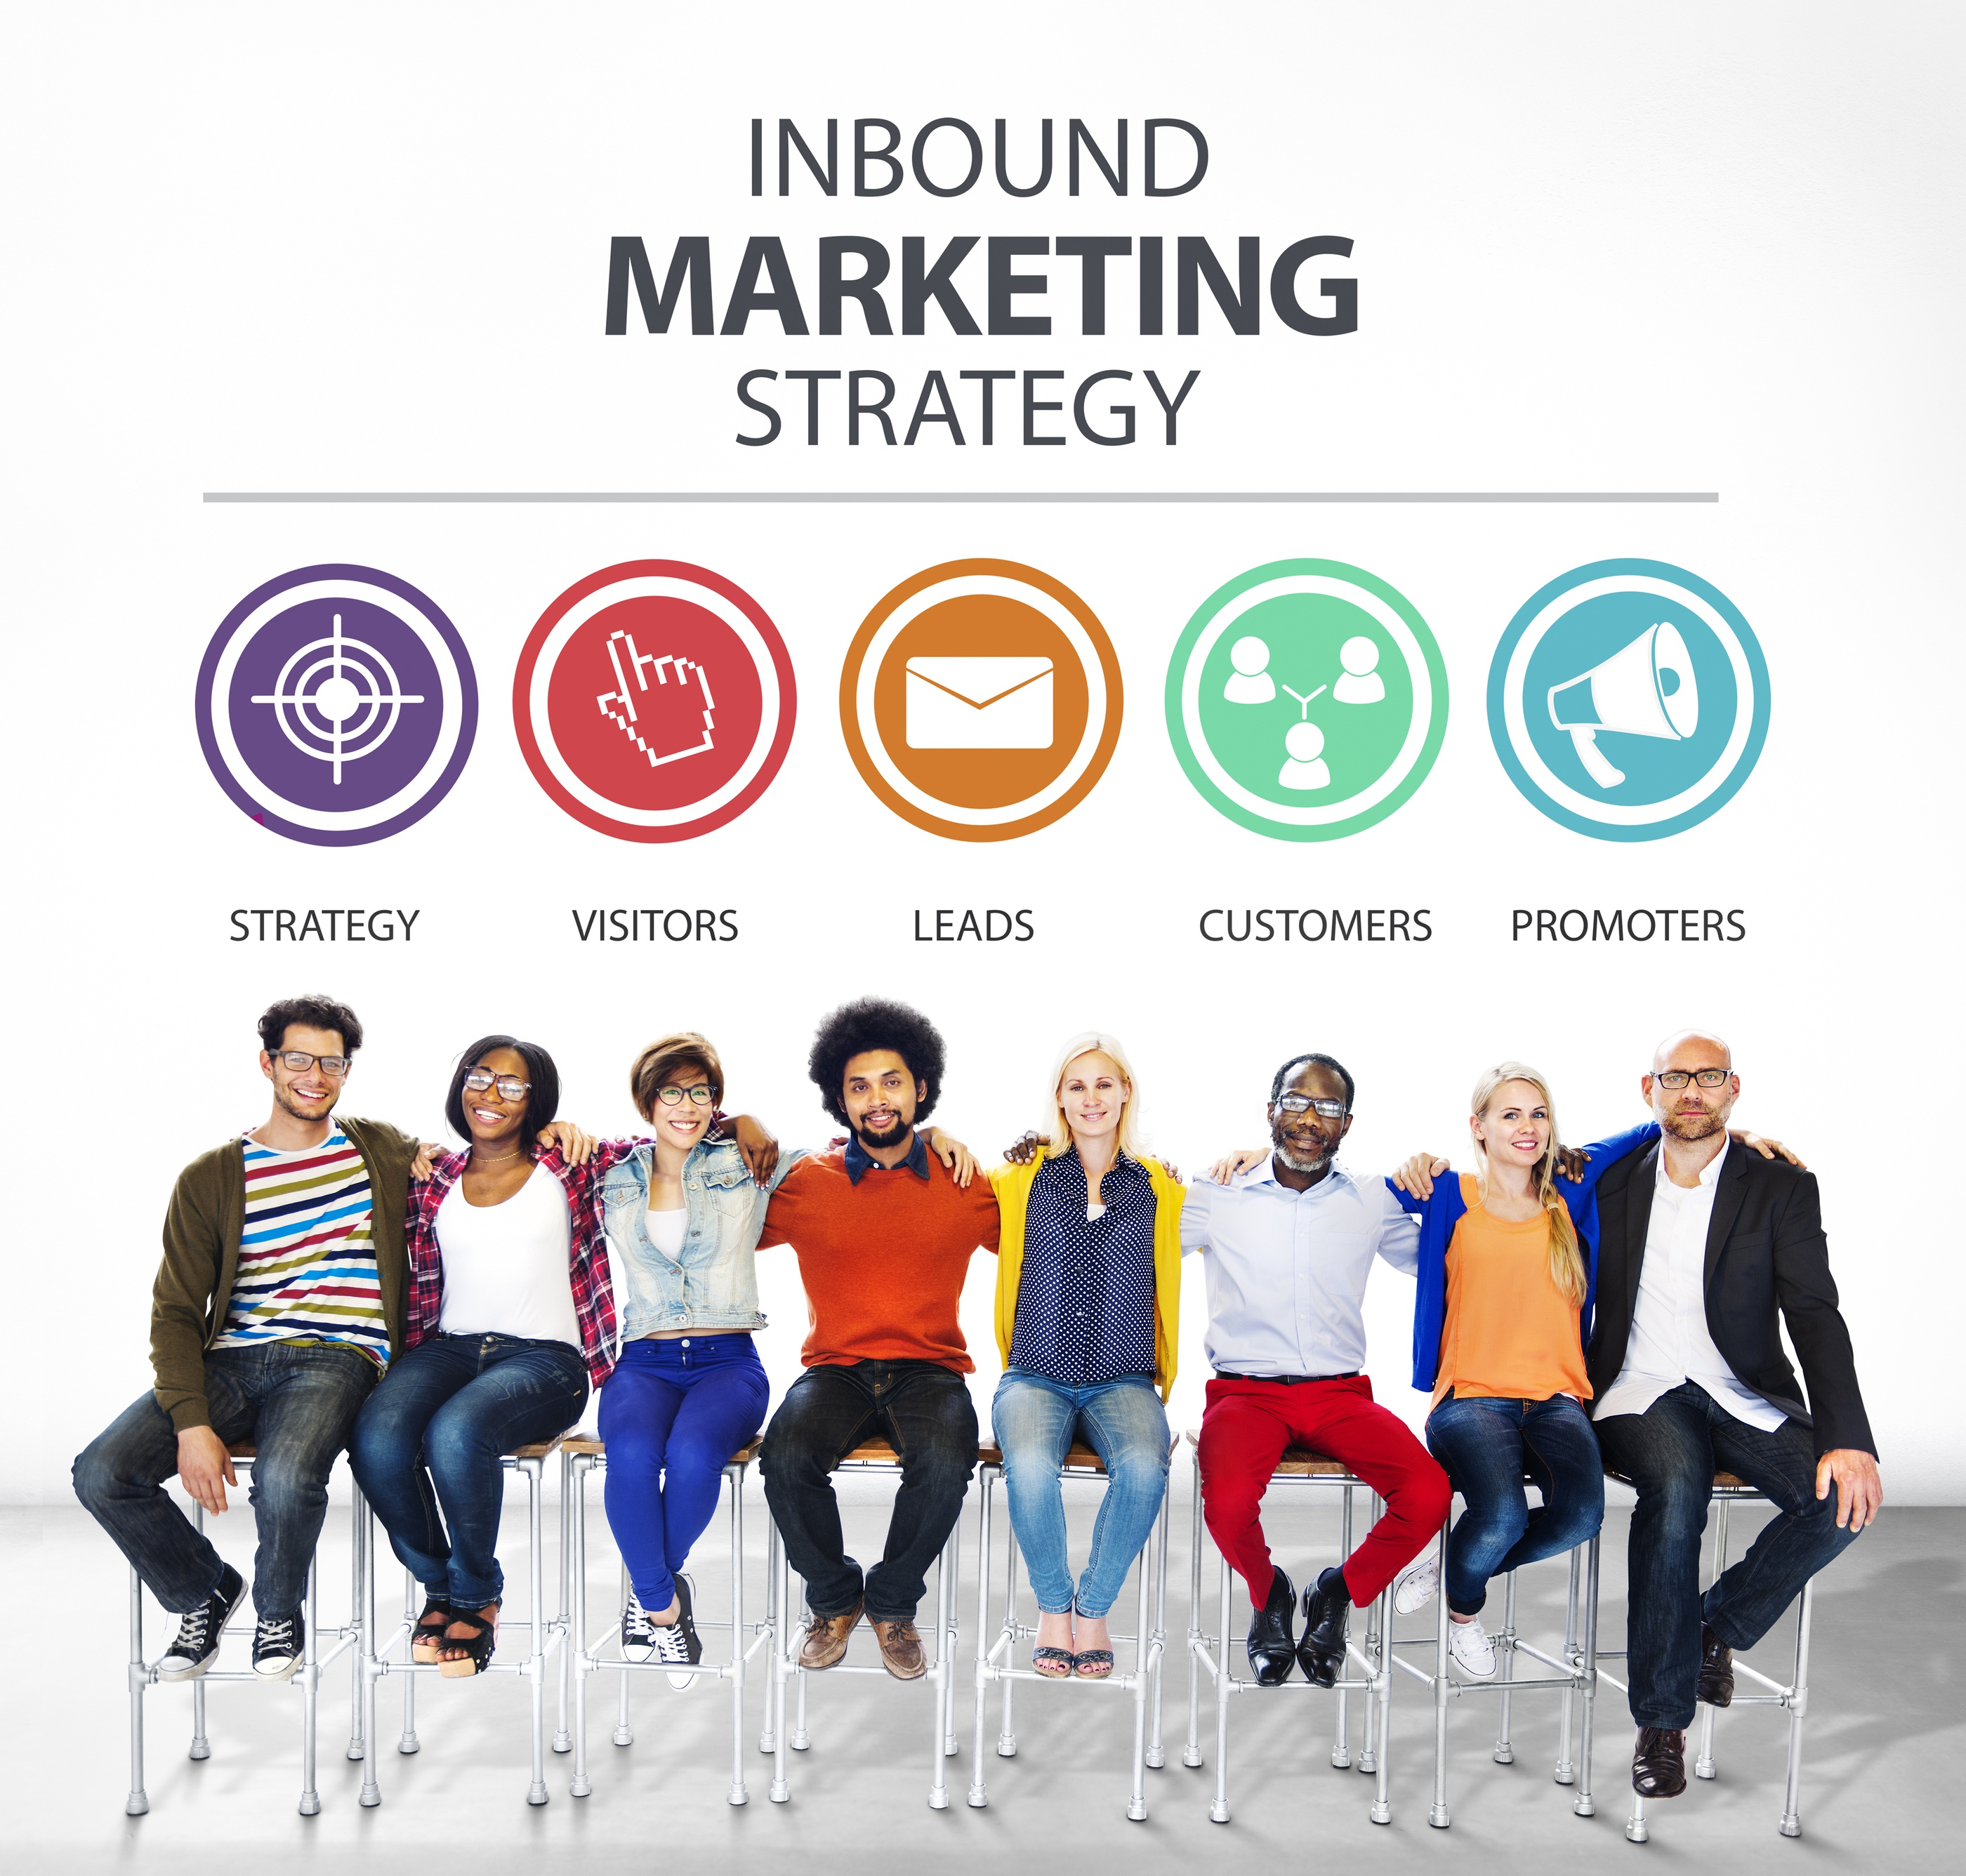 10 conceptos clave antes de implementar inbound marketing en tu empresa